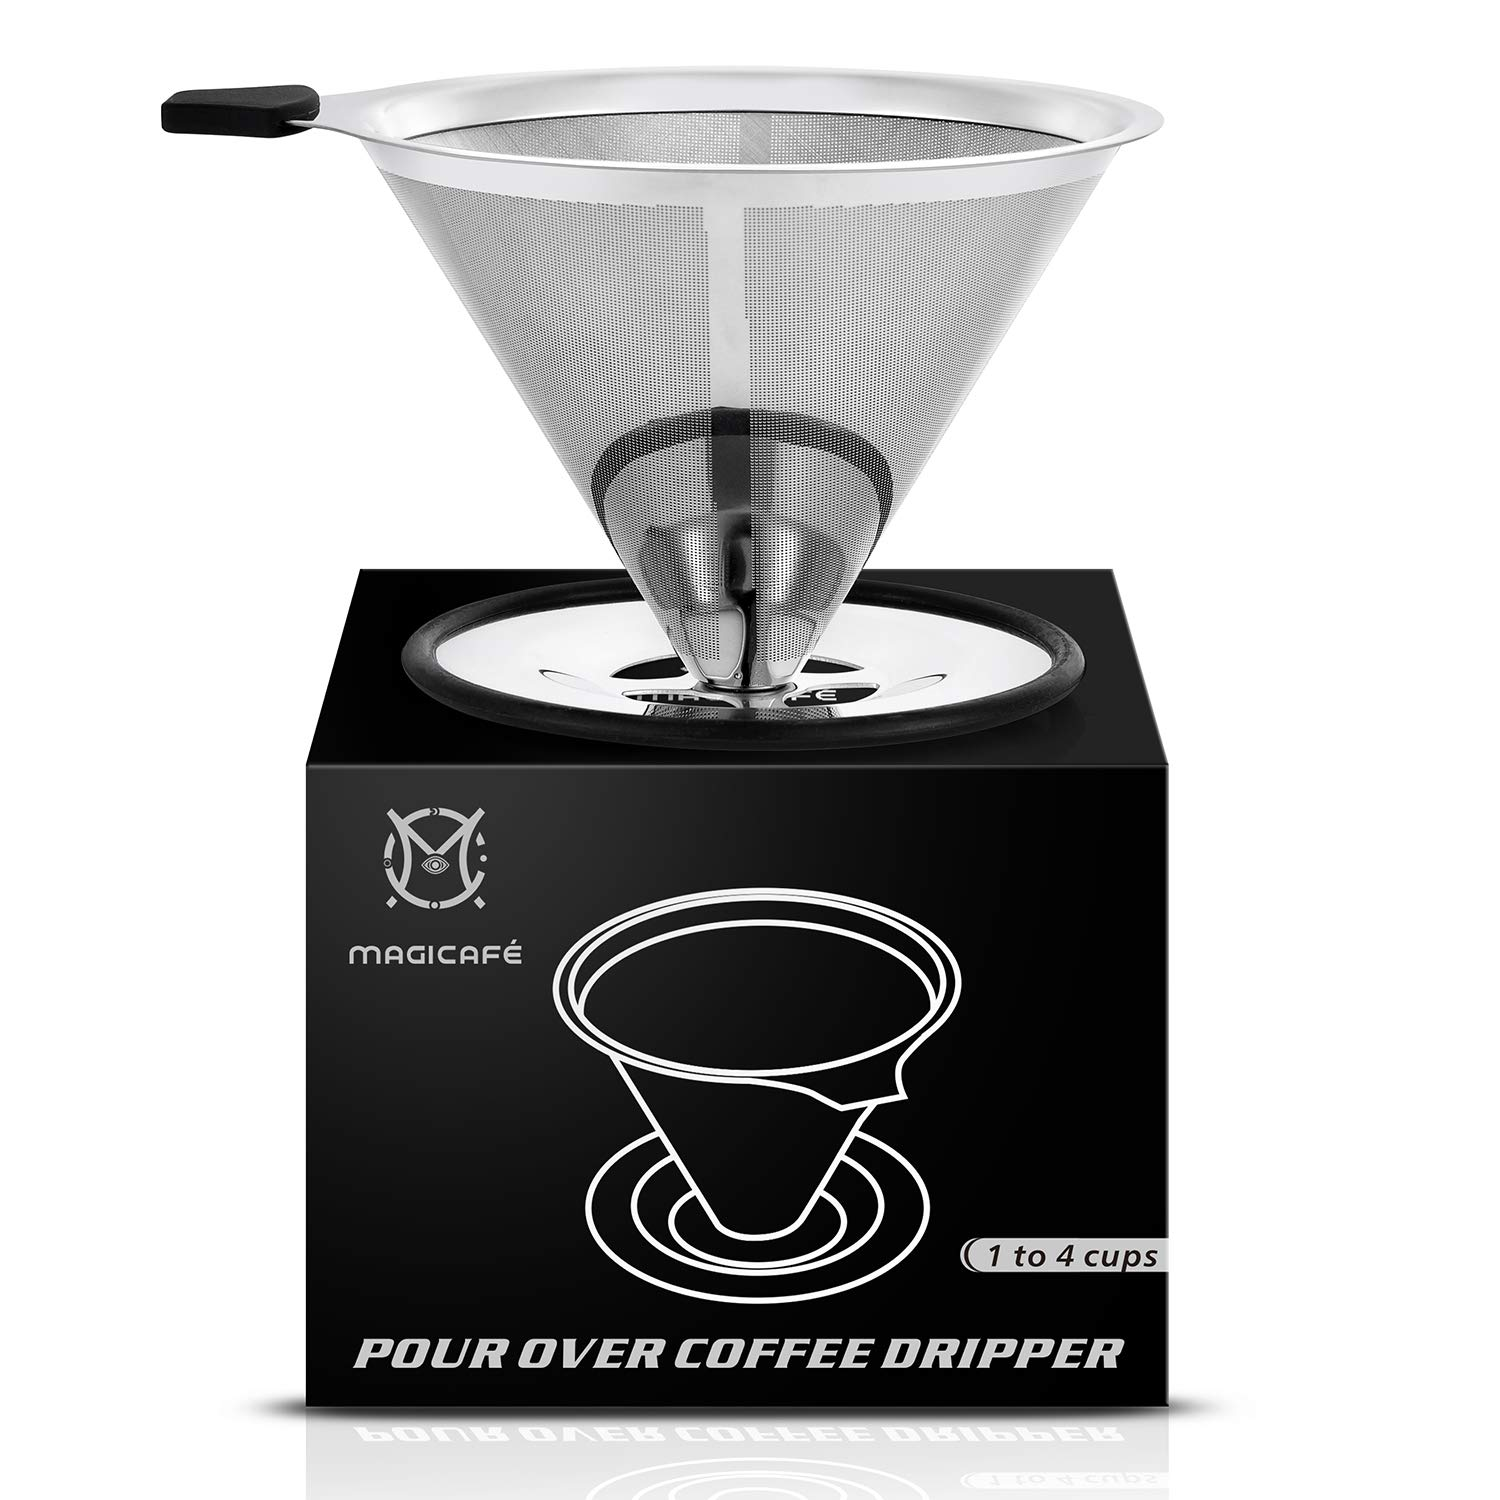 Magicafé Pour Over Coffee Dripper - Stainless Steel Micro Mesh Filter with Scoop Fits Most Travel Mugs,Tea And Coffee Cups by Magicafé